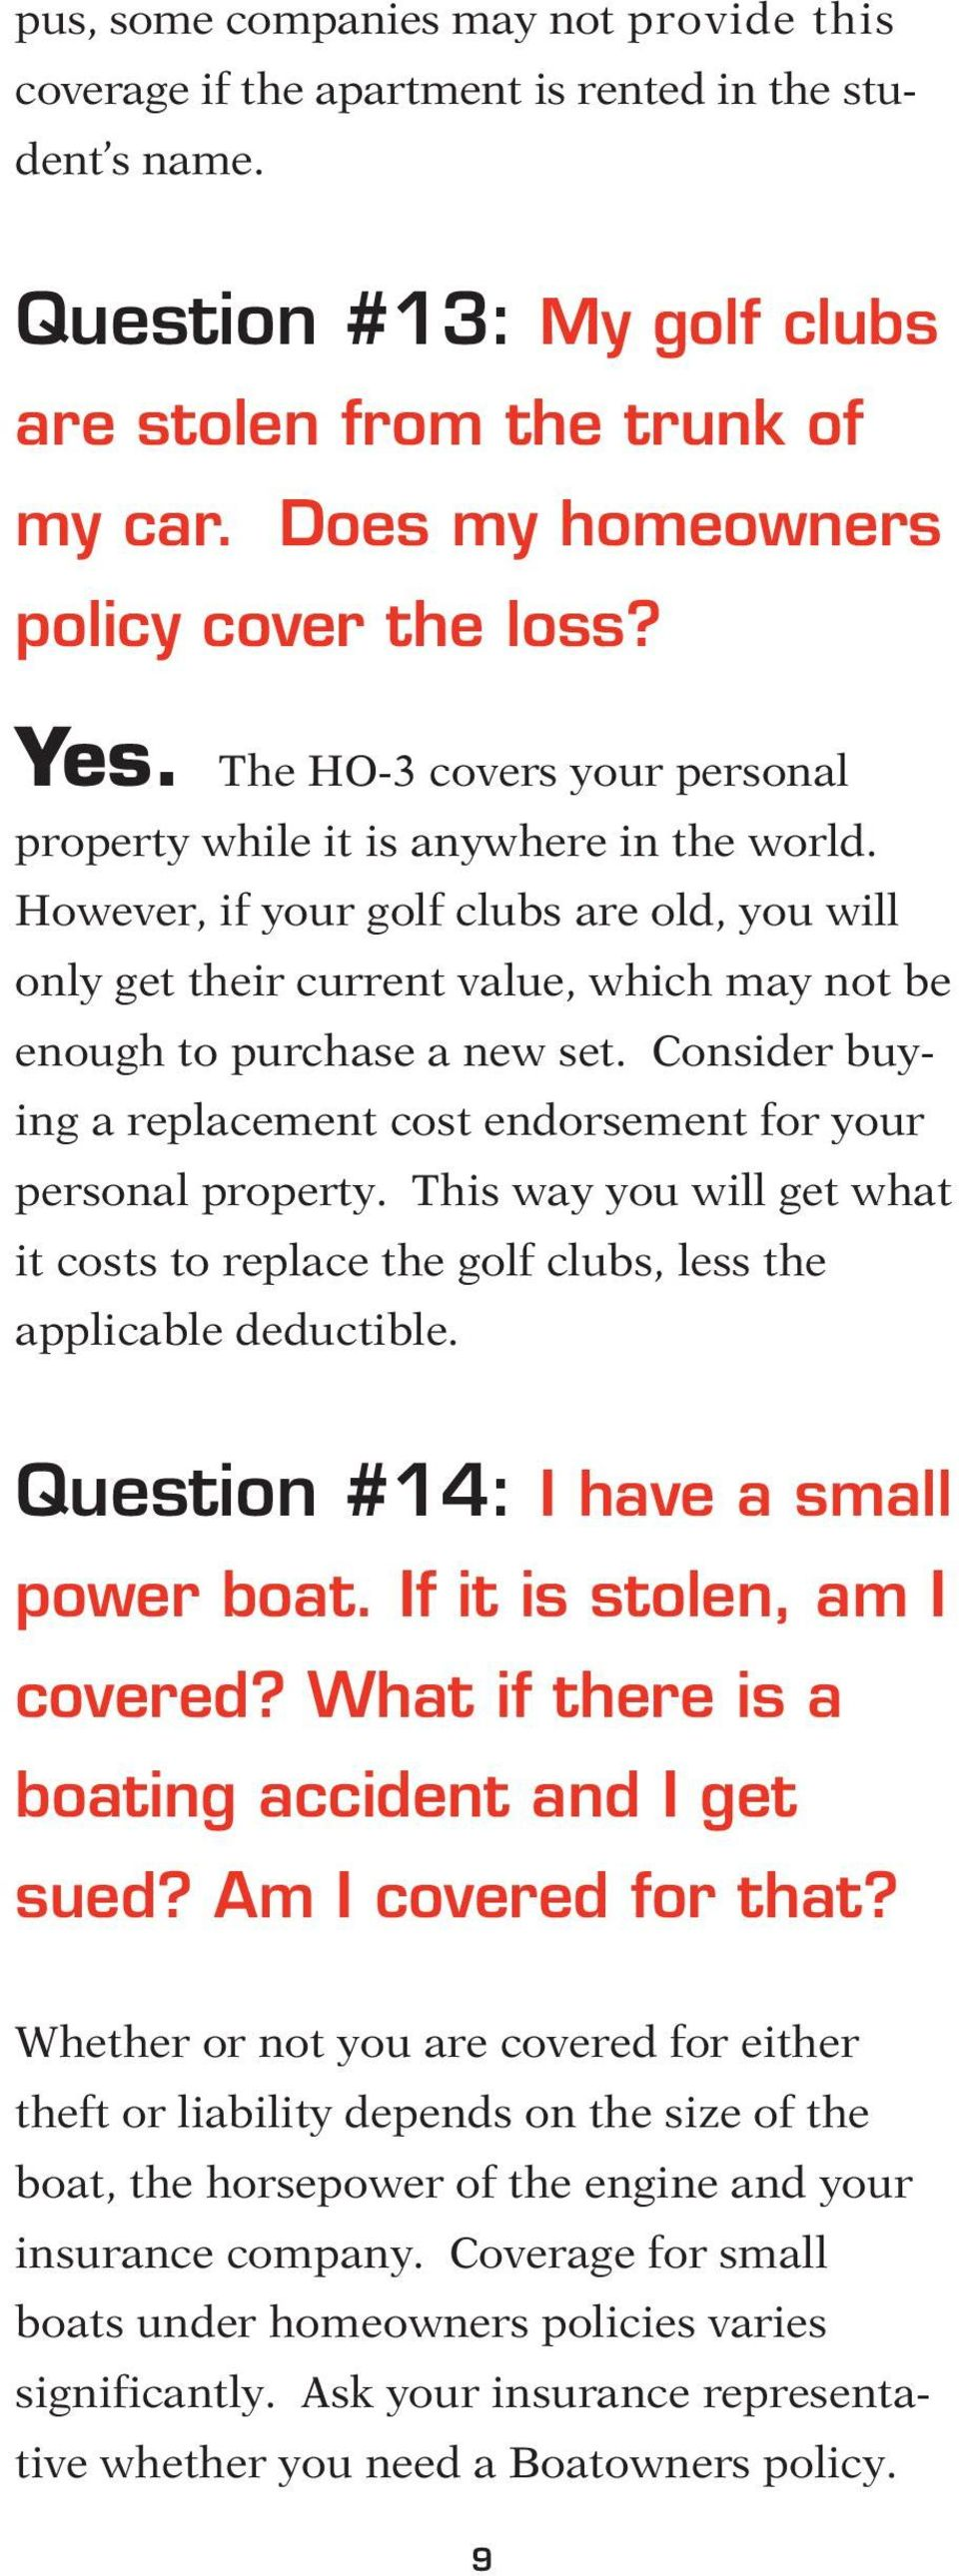 However, if your golf clubs are old, you will only get their current value, which may not be enough to purchase a new set. Consider buying a replacement cost endorsement for your personal property.